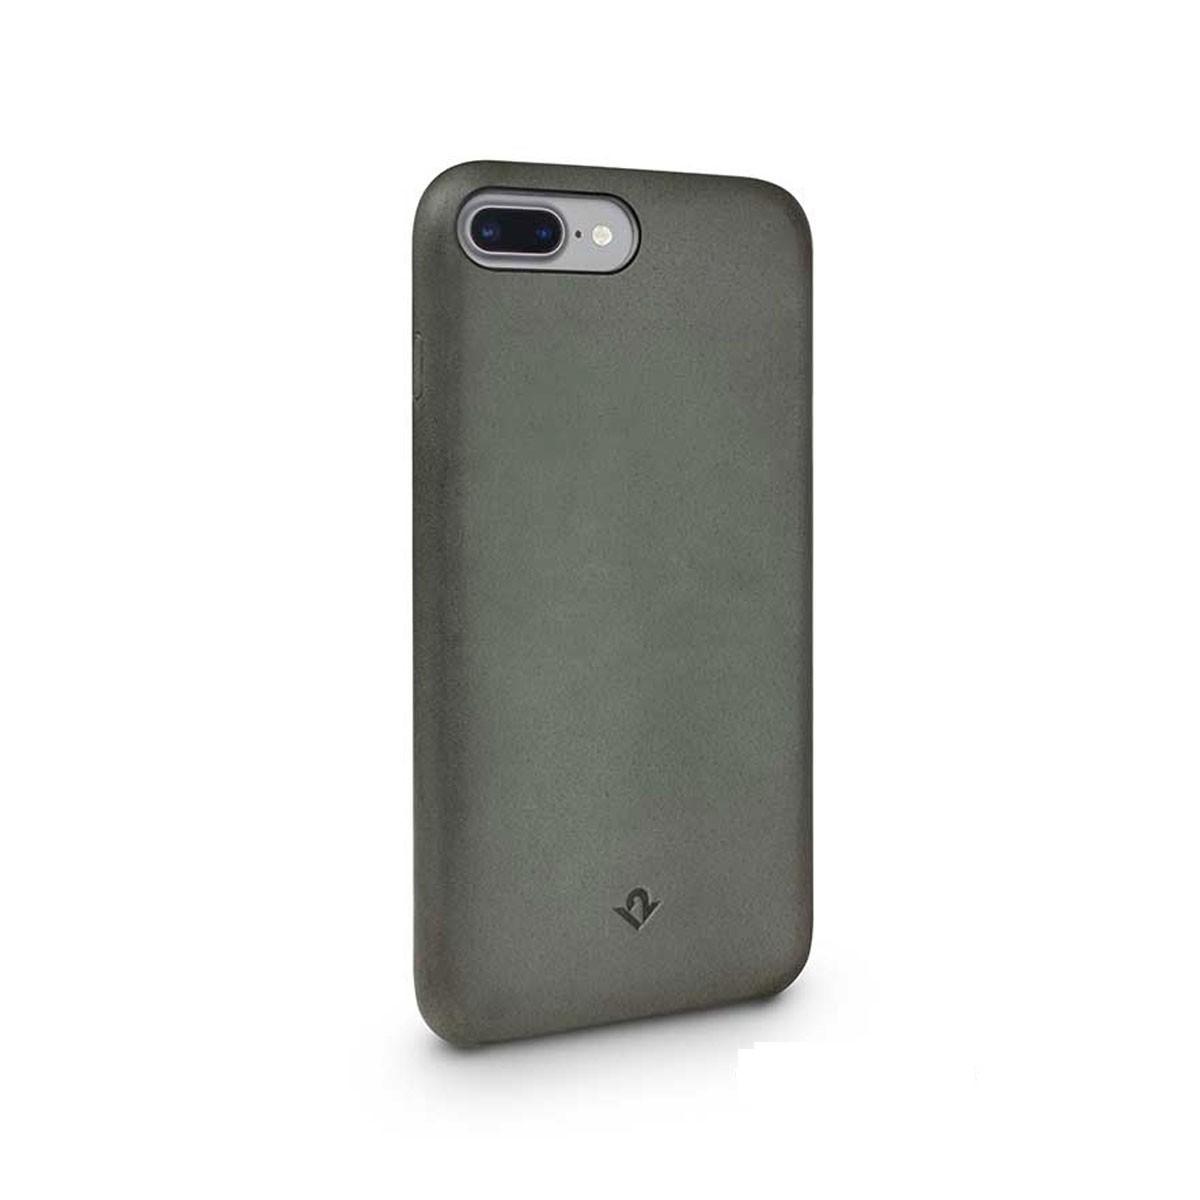 TwelveSouth Relaxed Leather Clip for iPhone 7 Plus - Dried Herb